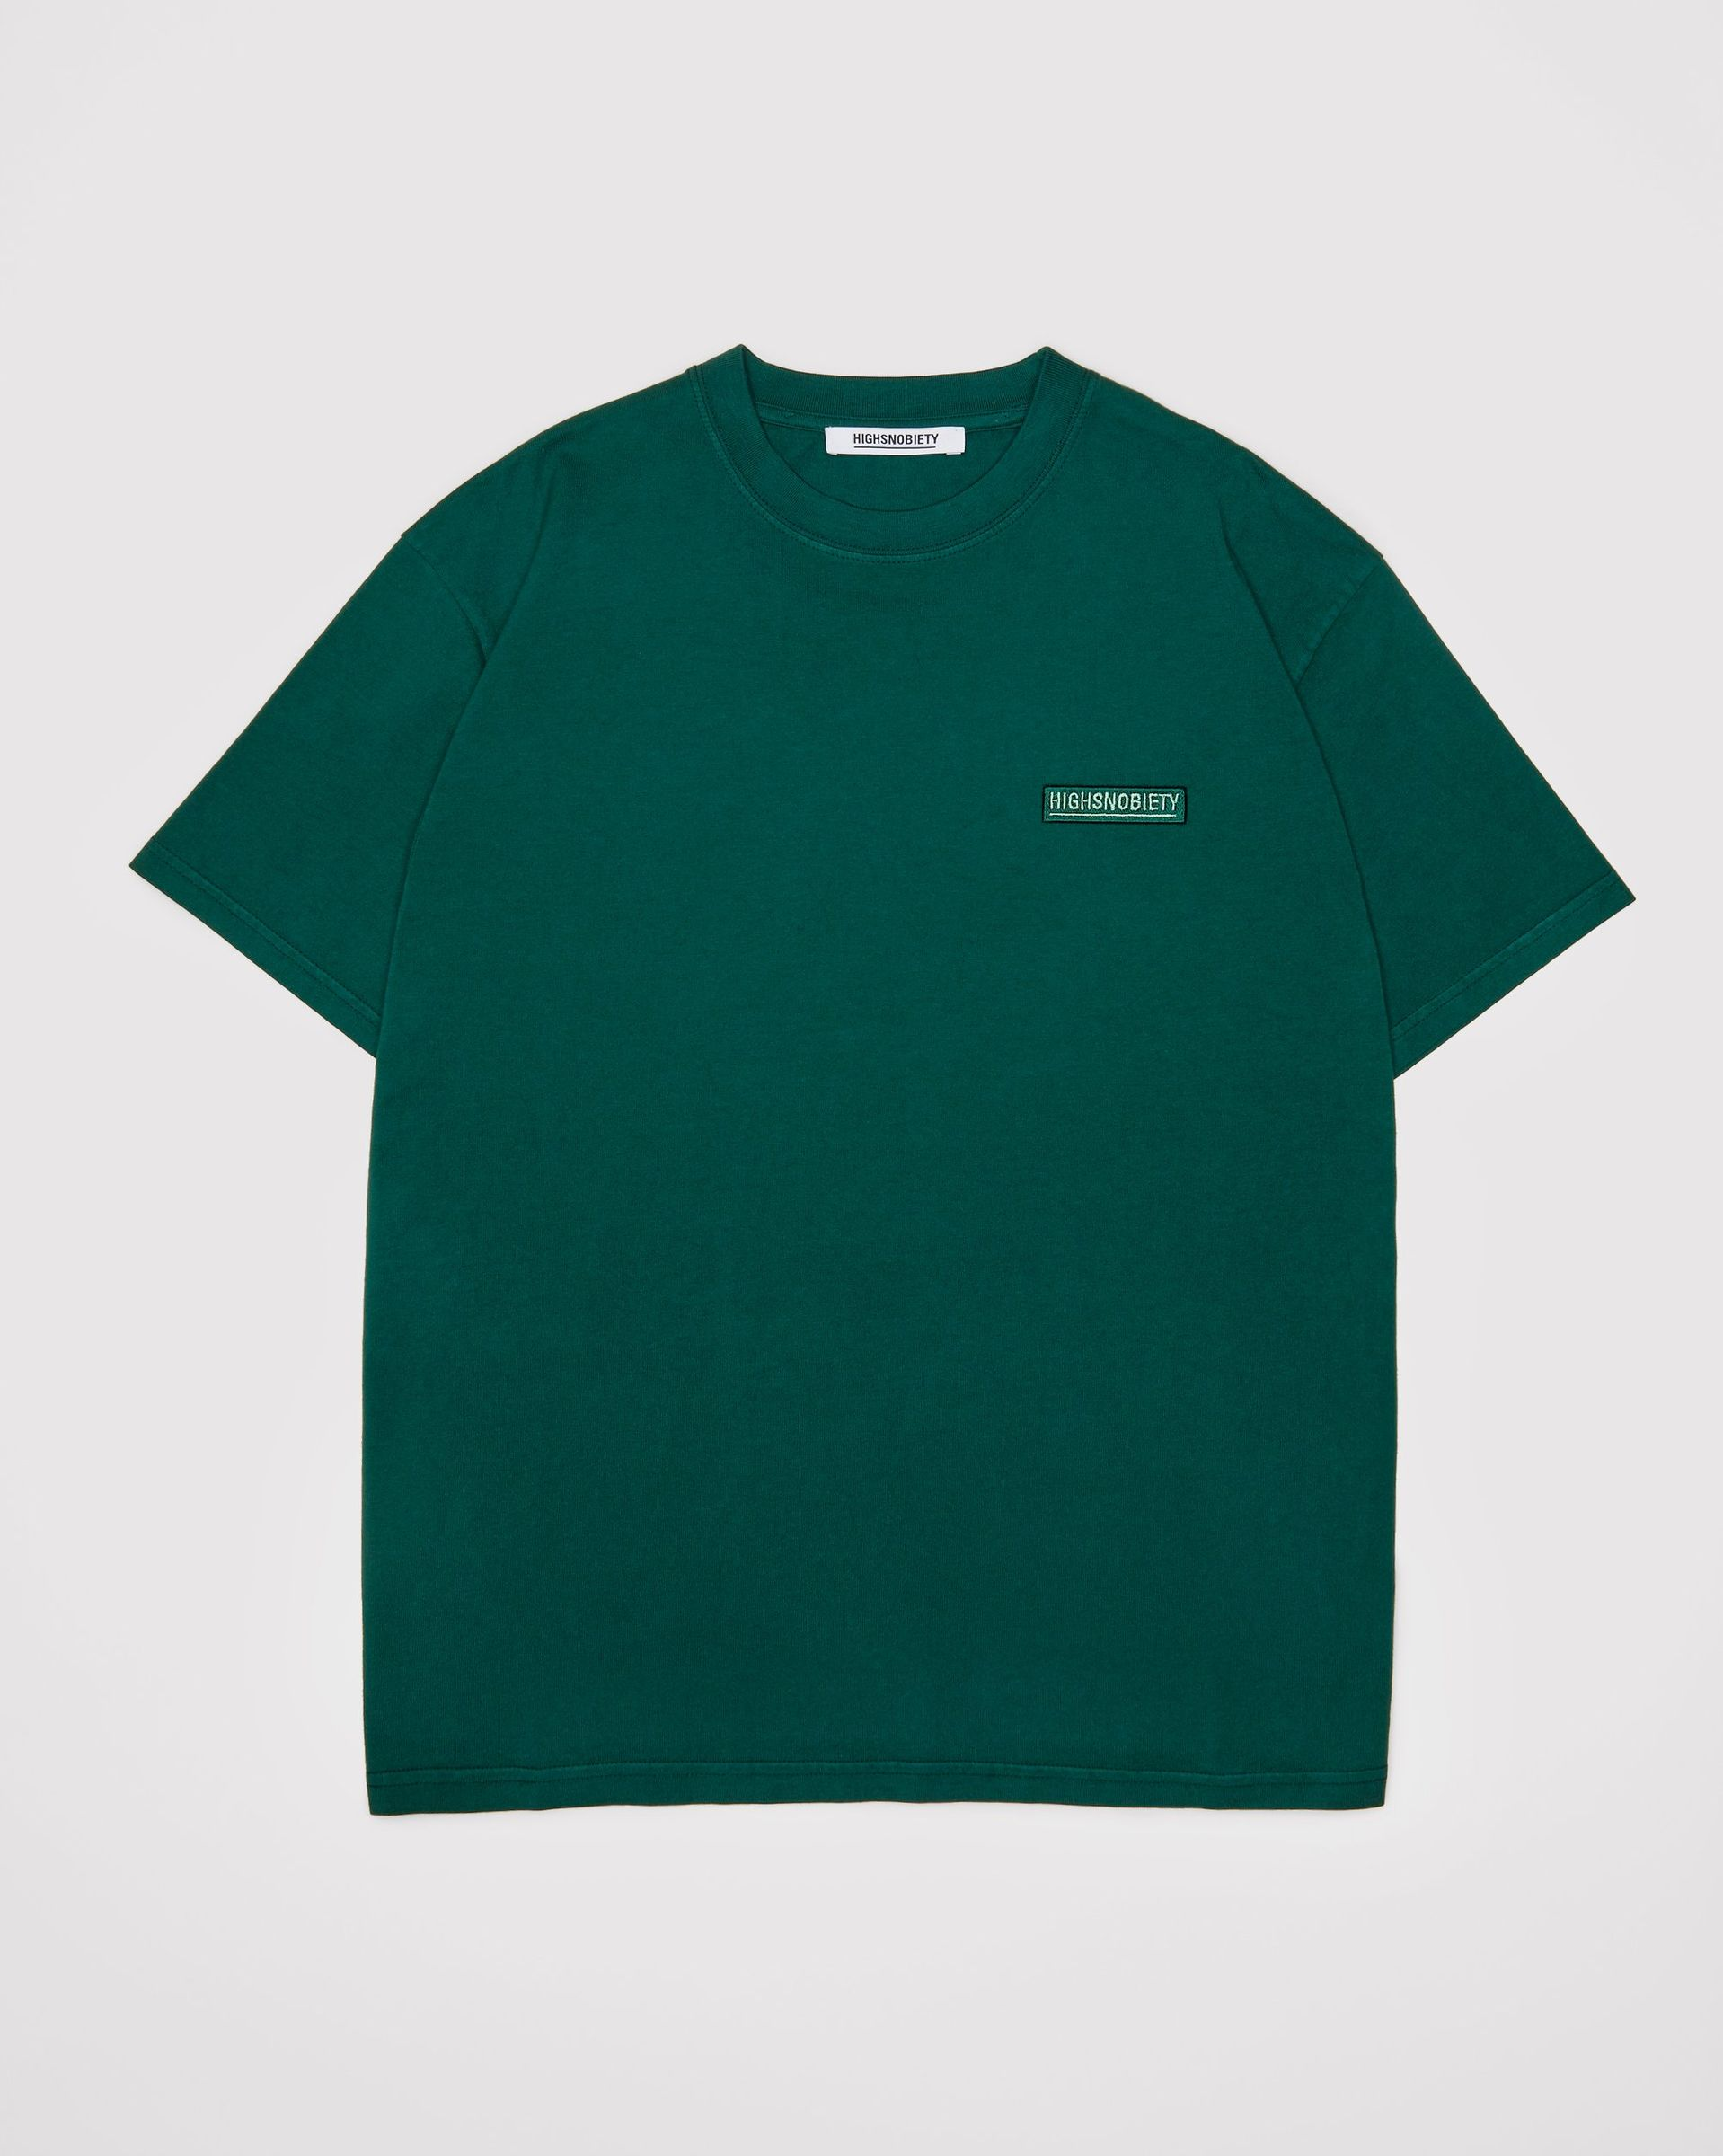 Highsnobiety Staples - T-Shirt Green - Image 1